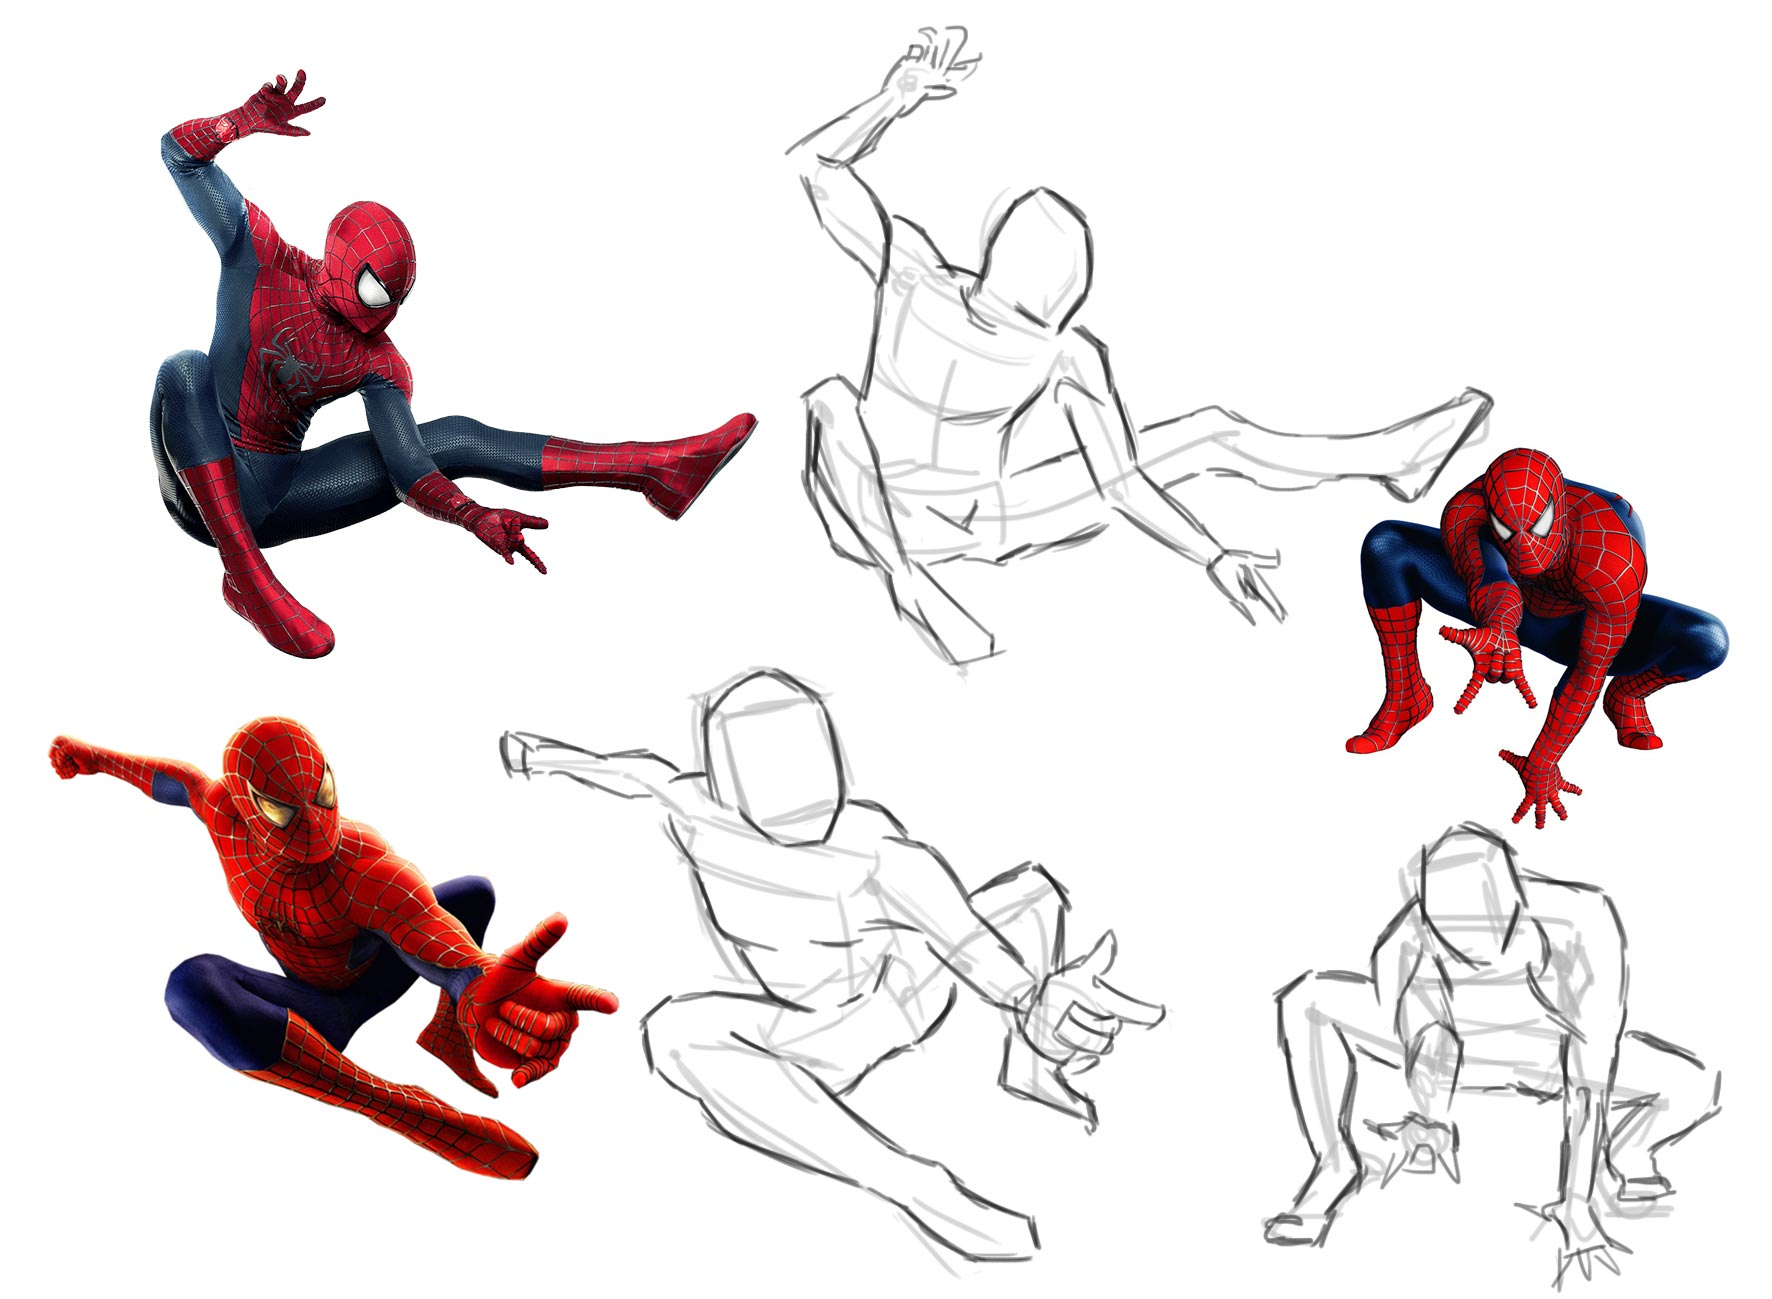 SpiderMan drawing reference